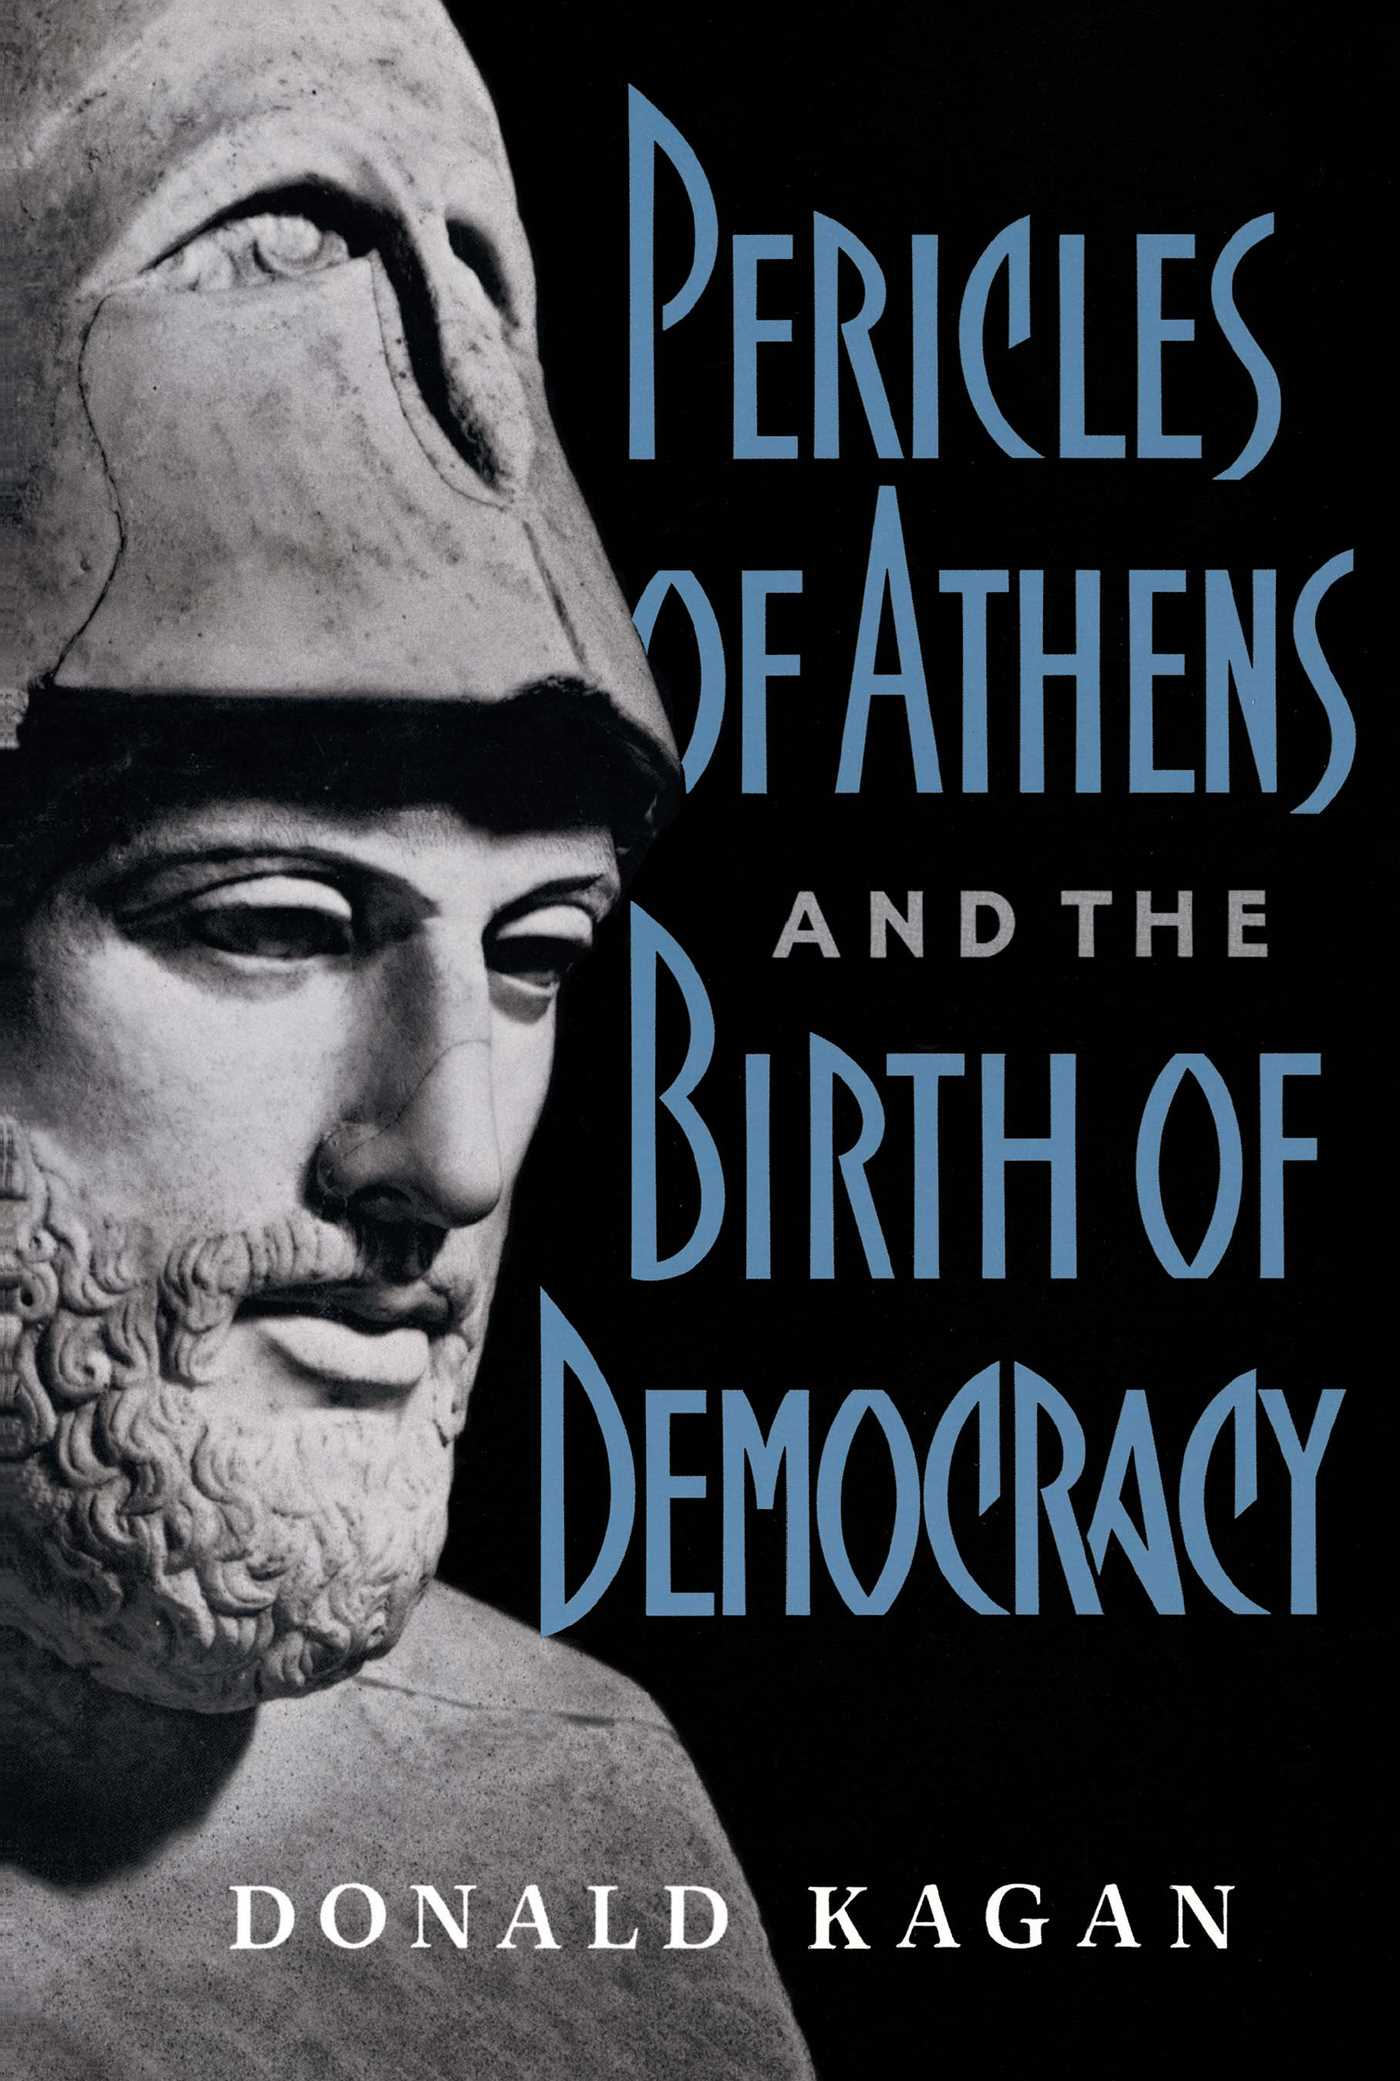 Pericles-of-athens-and-the-birth-of-democracy-9780684863955_hr